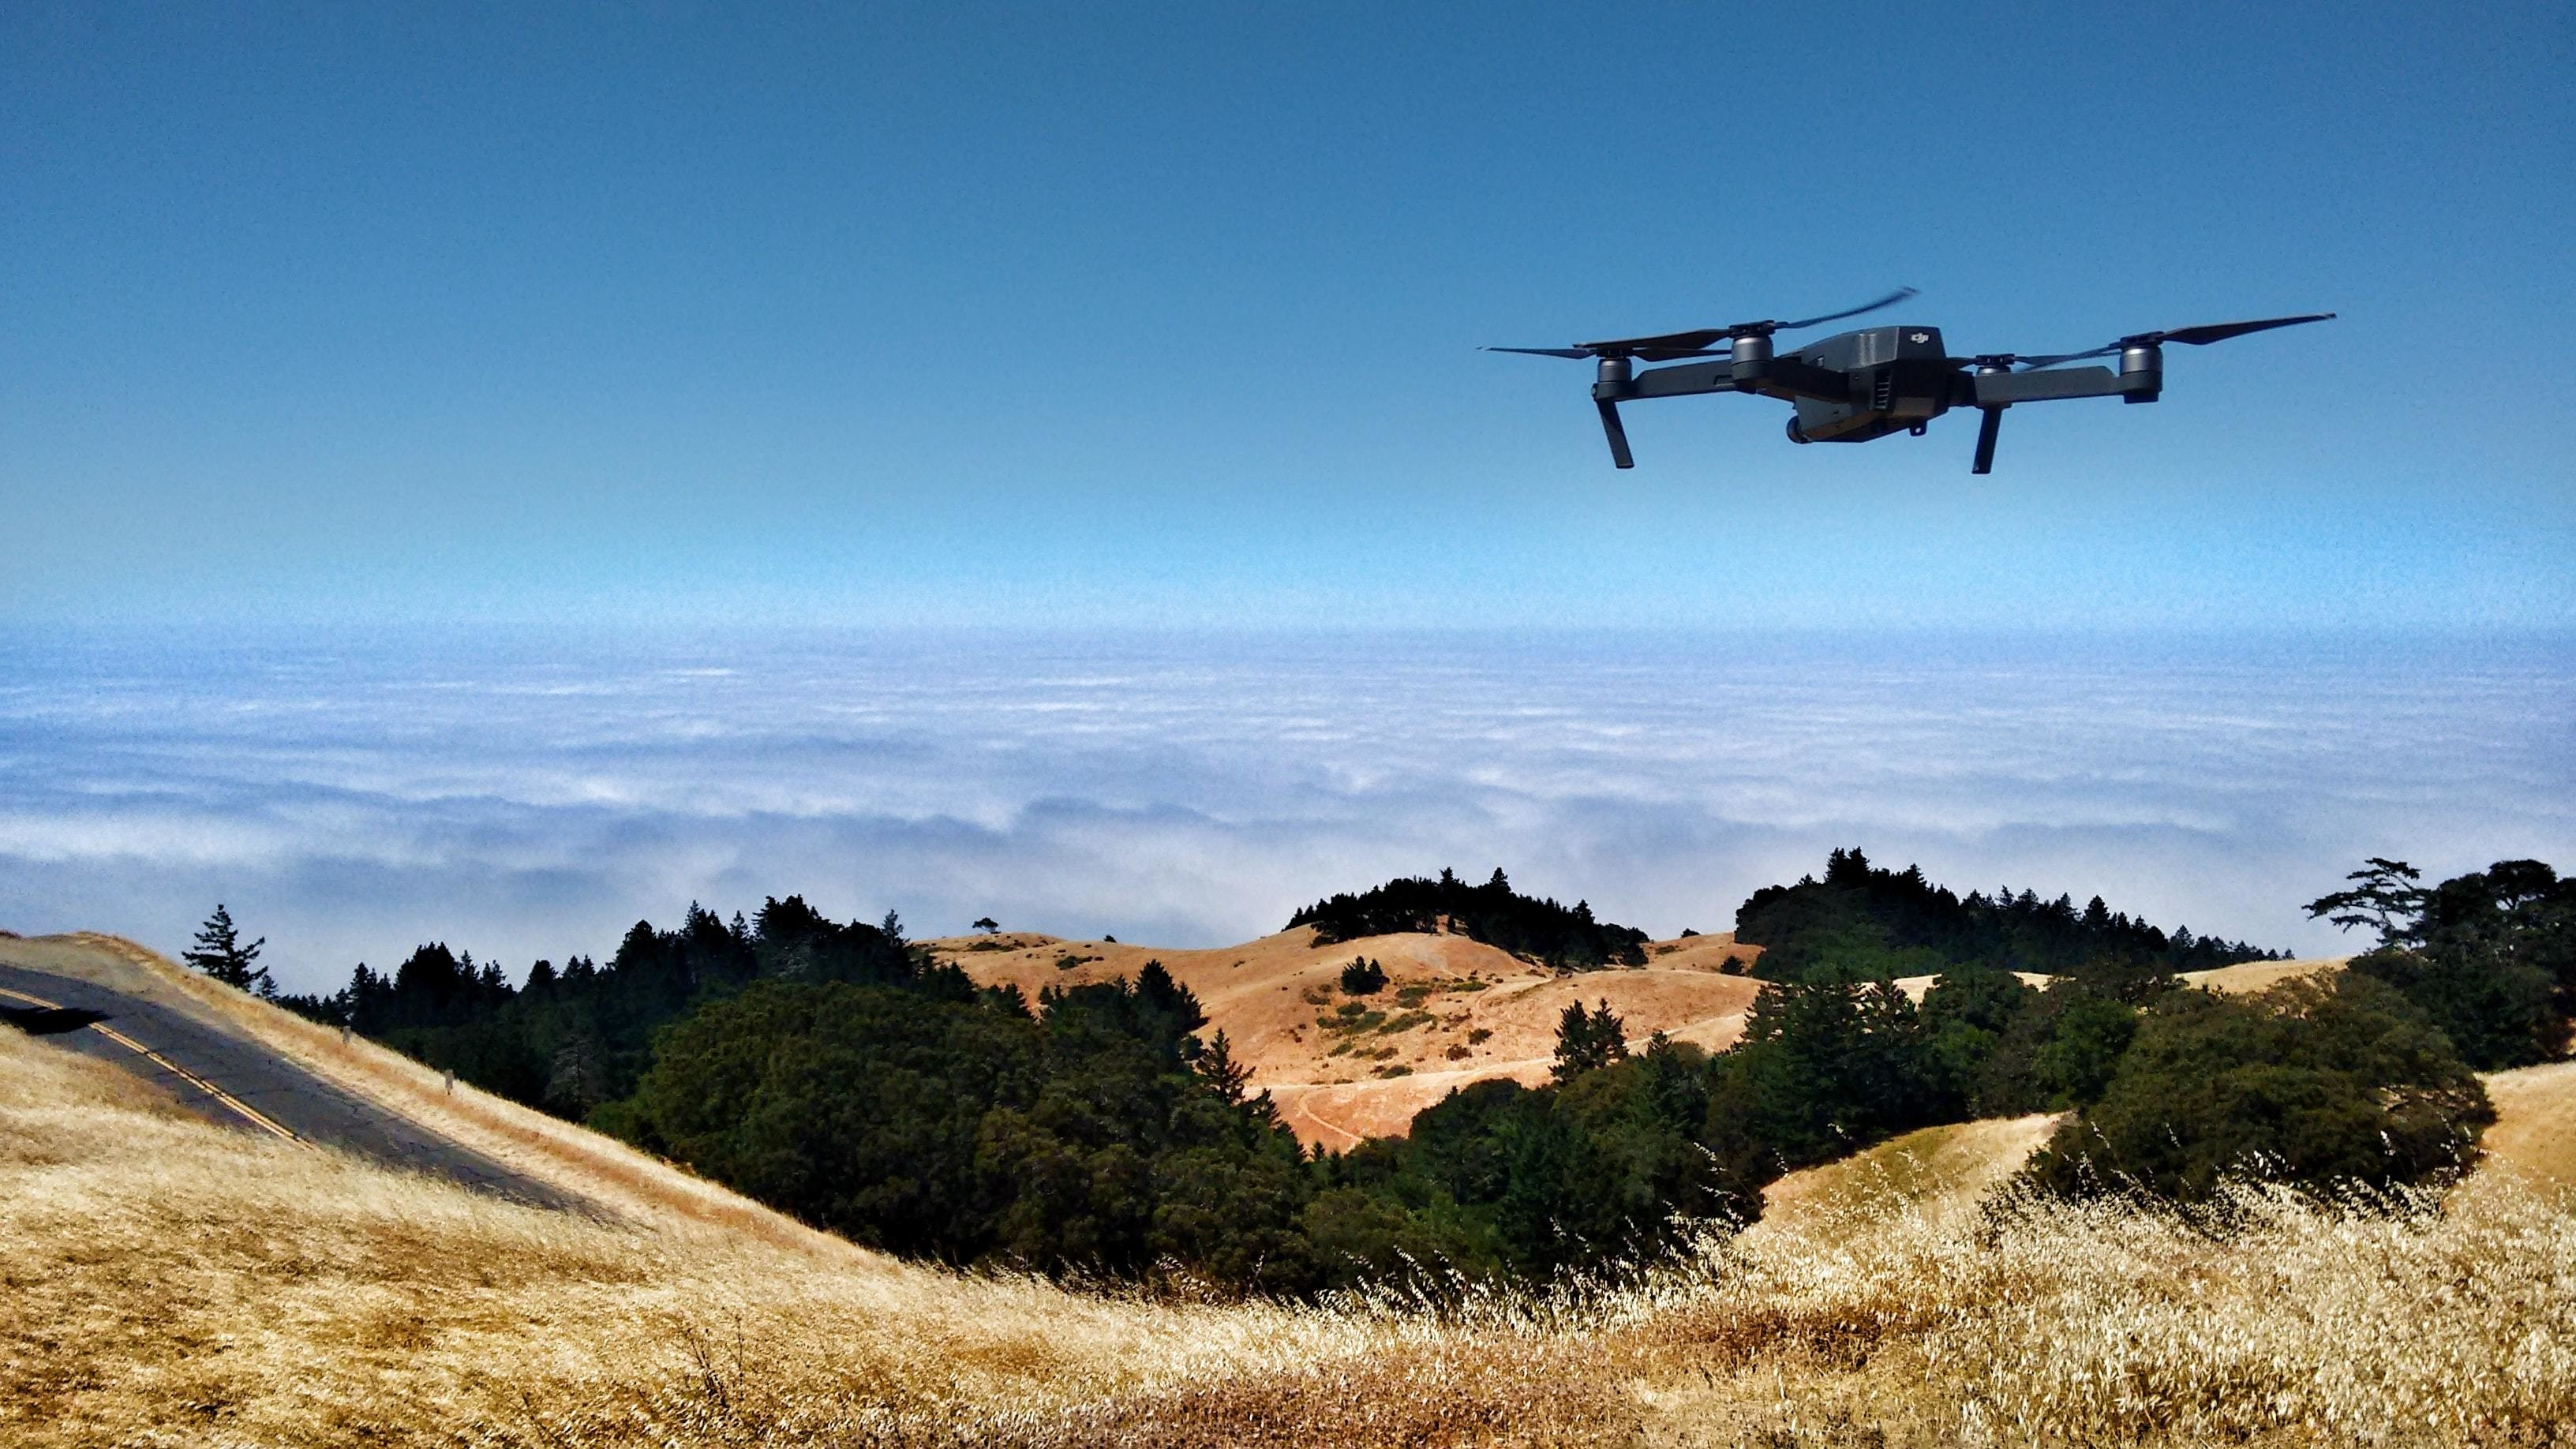 drones, like this one shown here, are helping to oversea conservation efforts